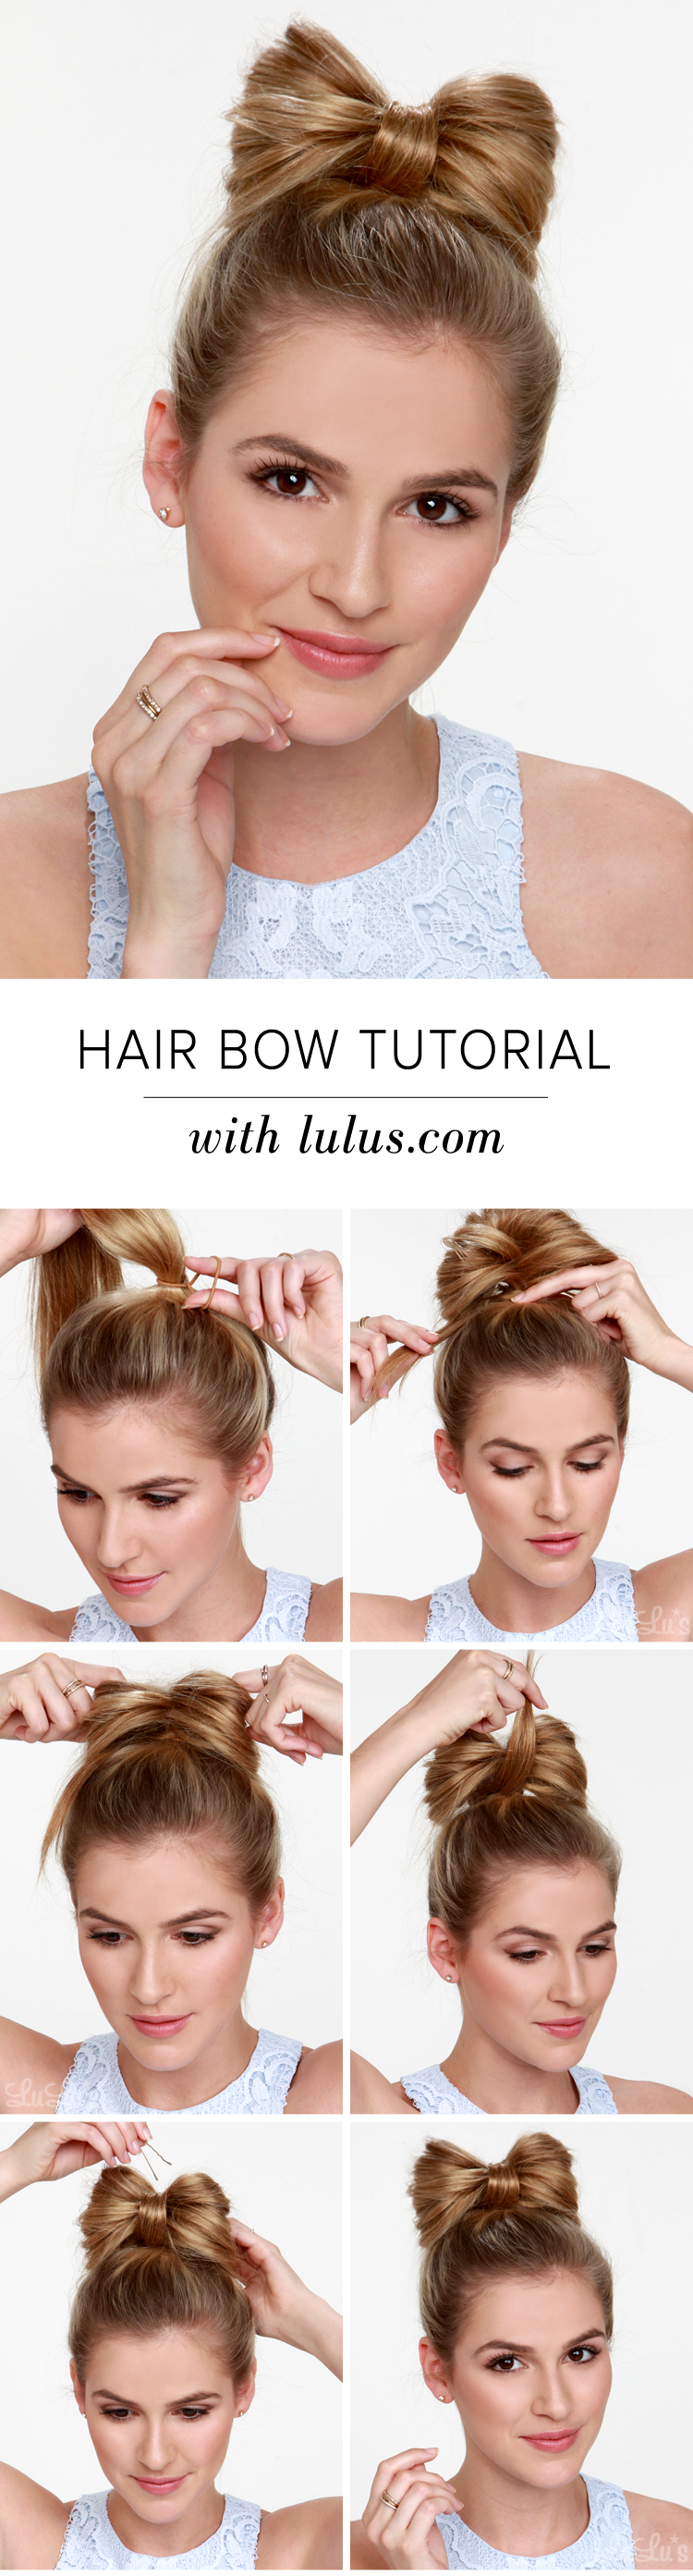 Lulus how to hair bow tutorial lulus fashion blog lulus how to hair bow tutorial at lulus baditri Image collections